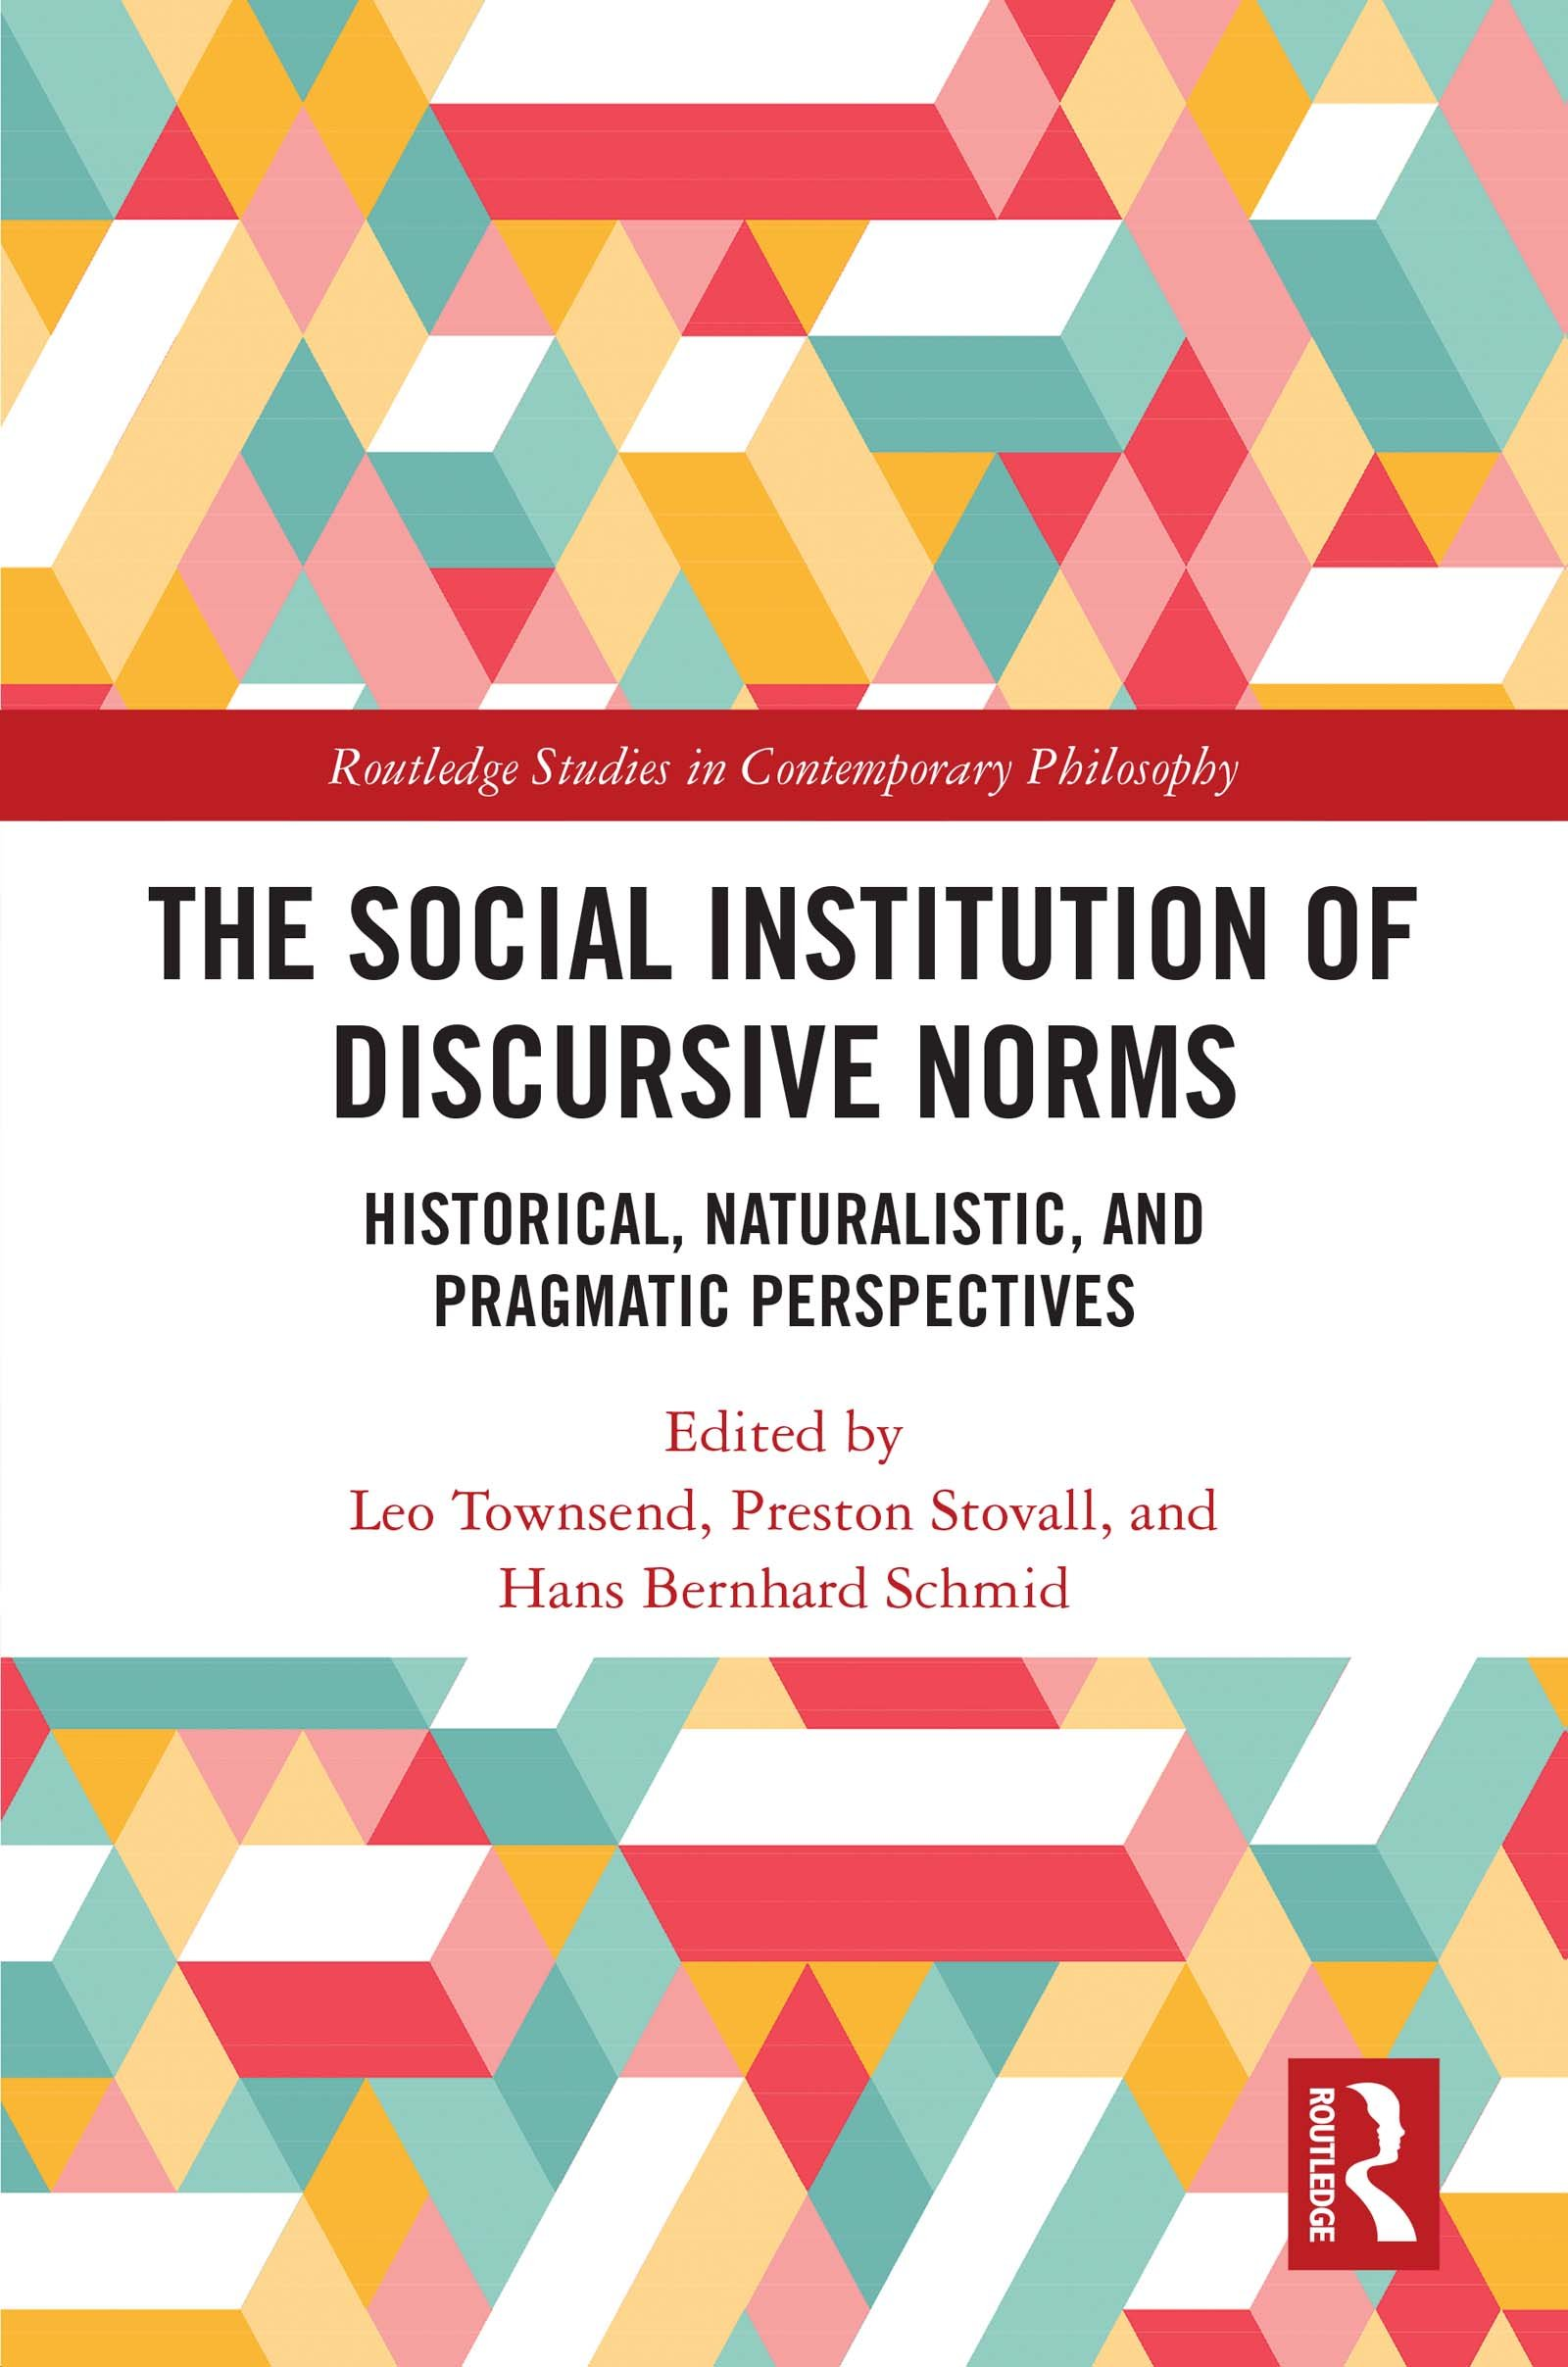 The Social Institution of Discursive Norms